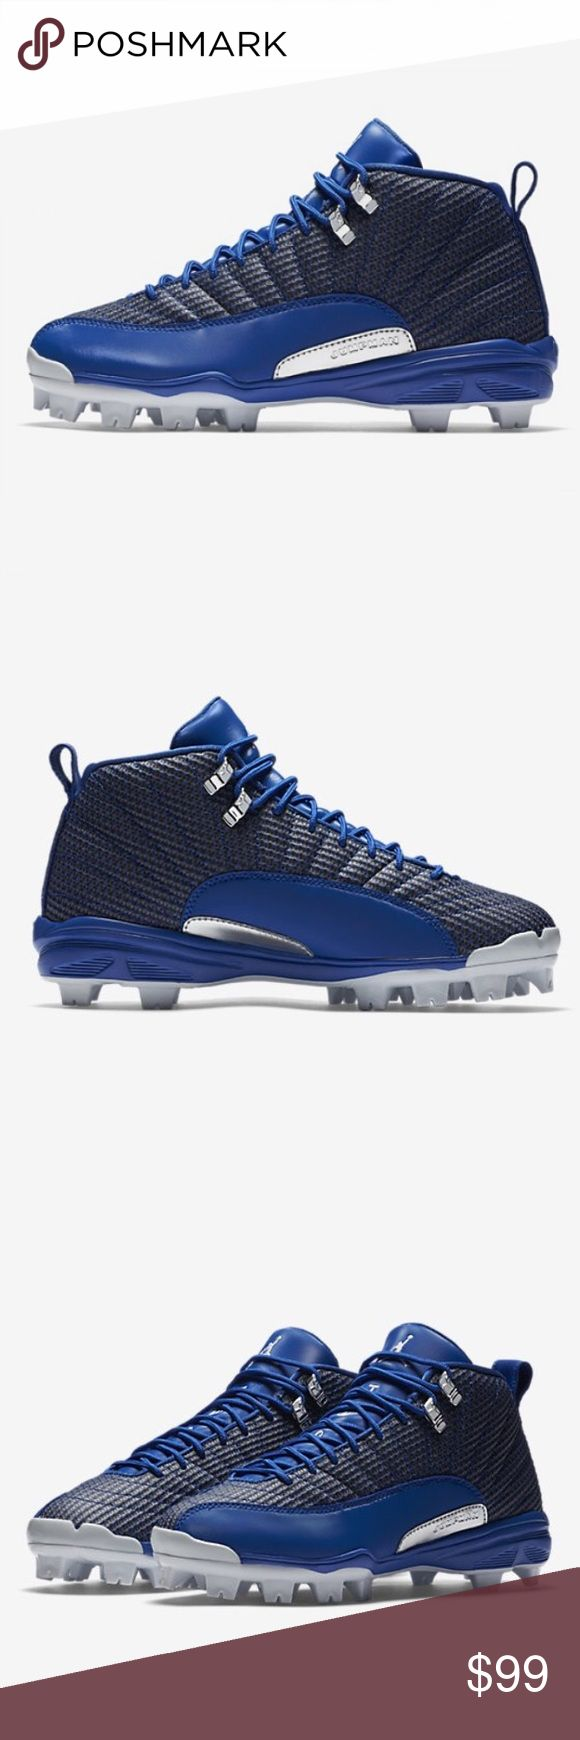 Nike Air Jordan 12 XII Retro Baseball Cleats